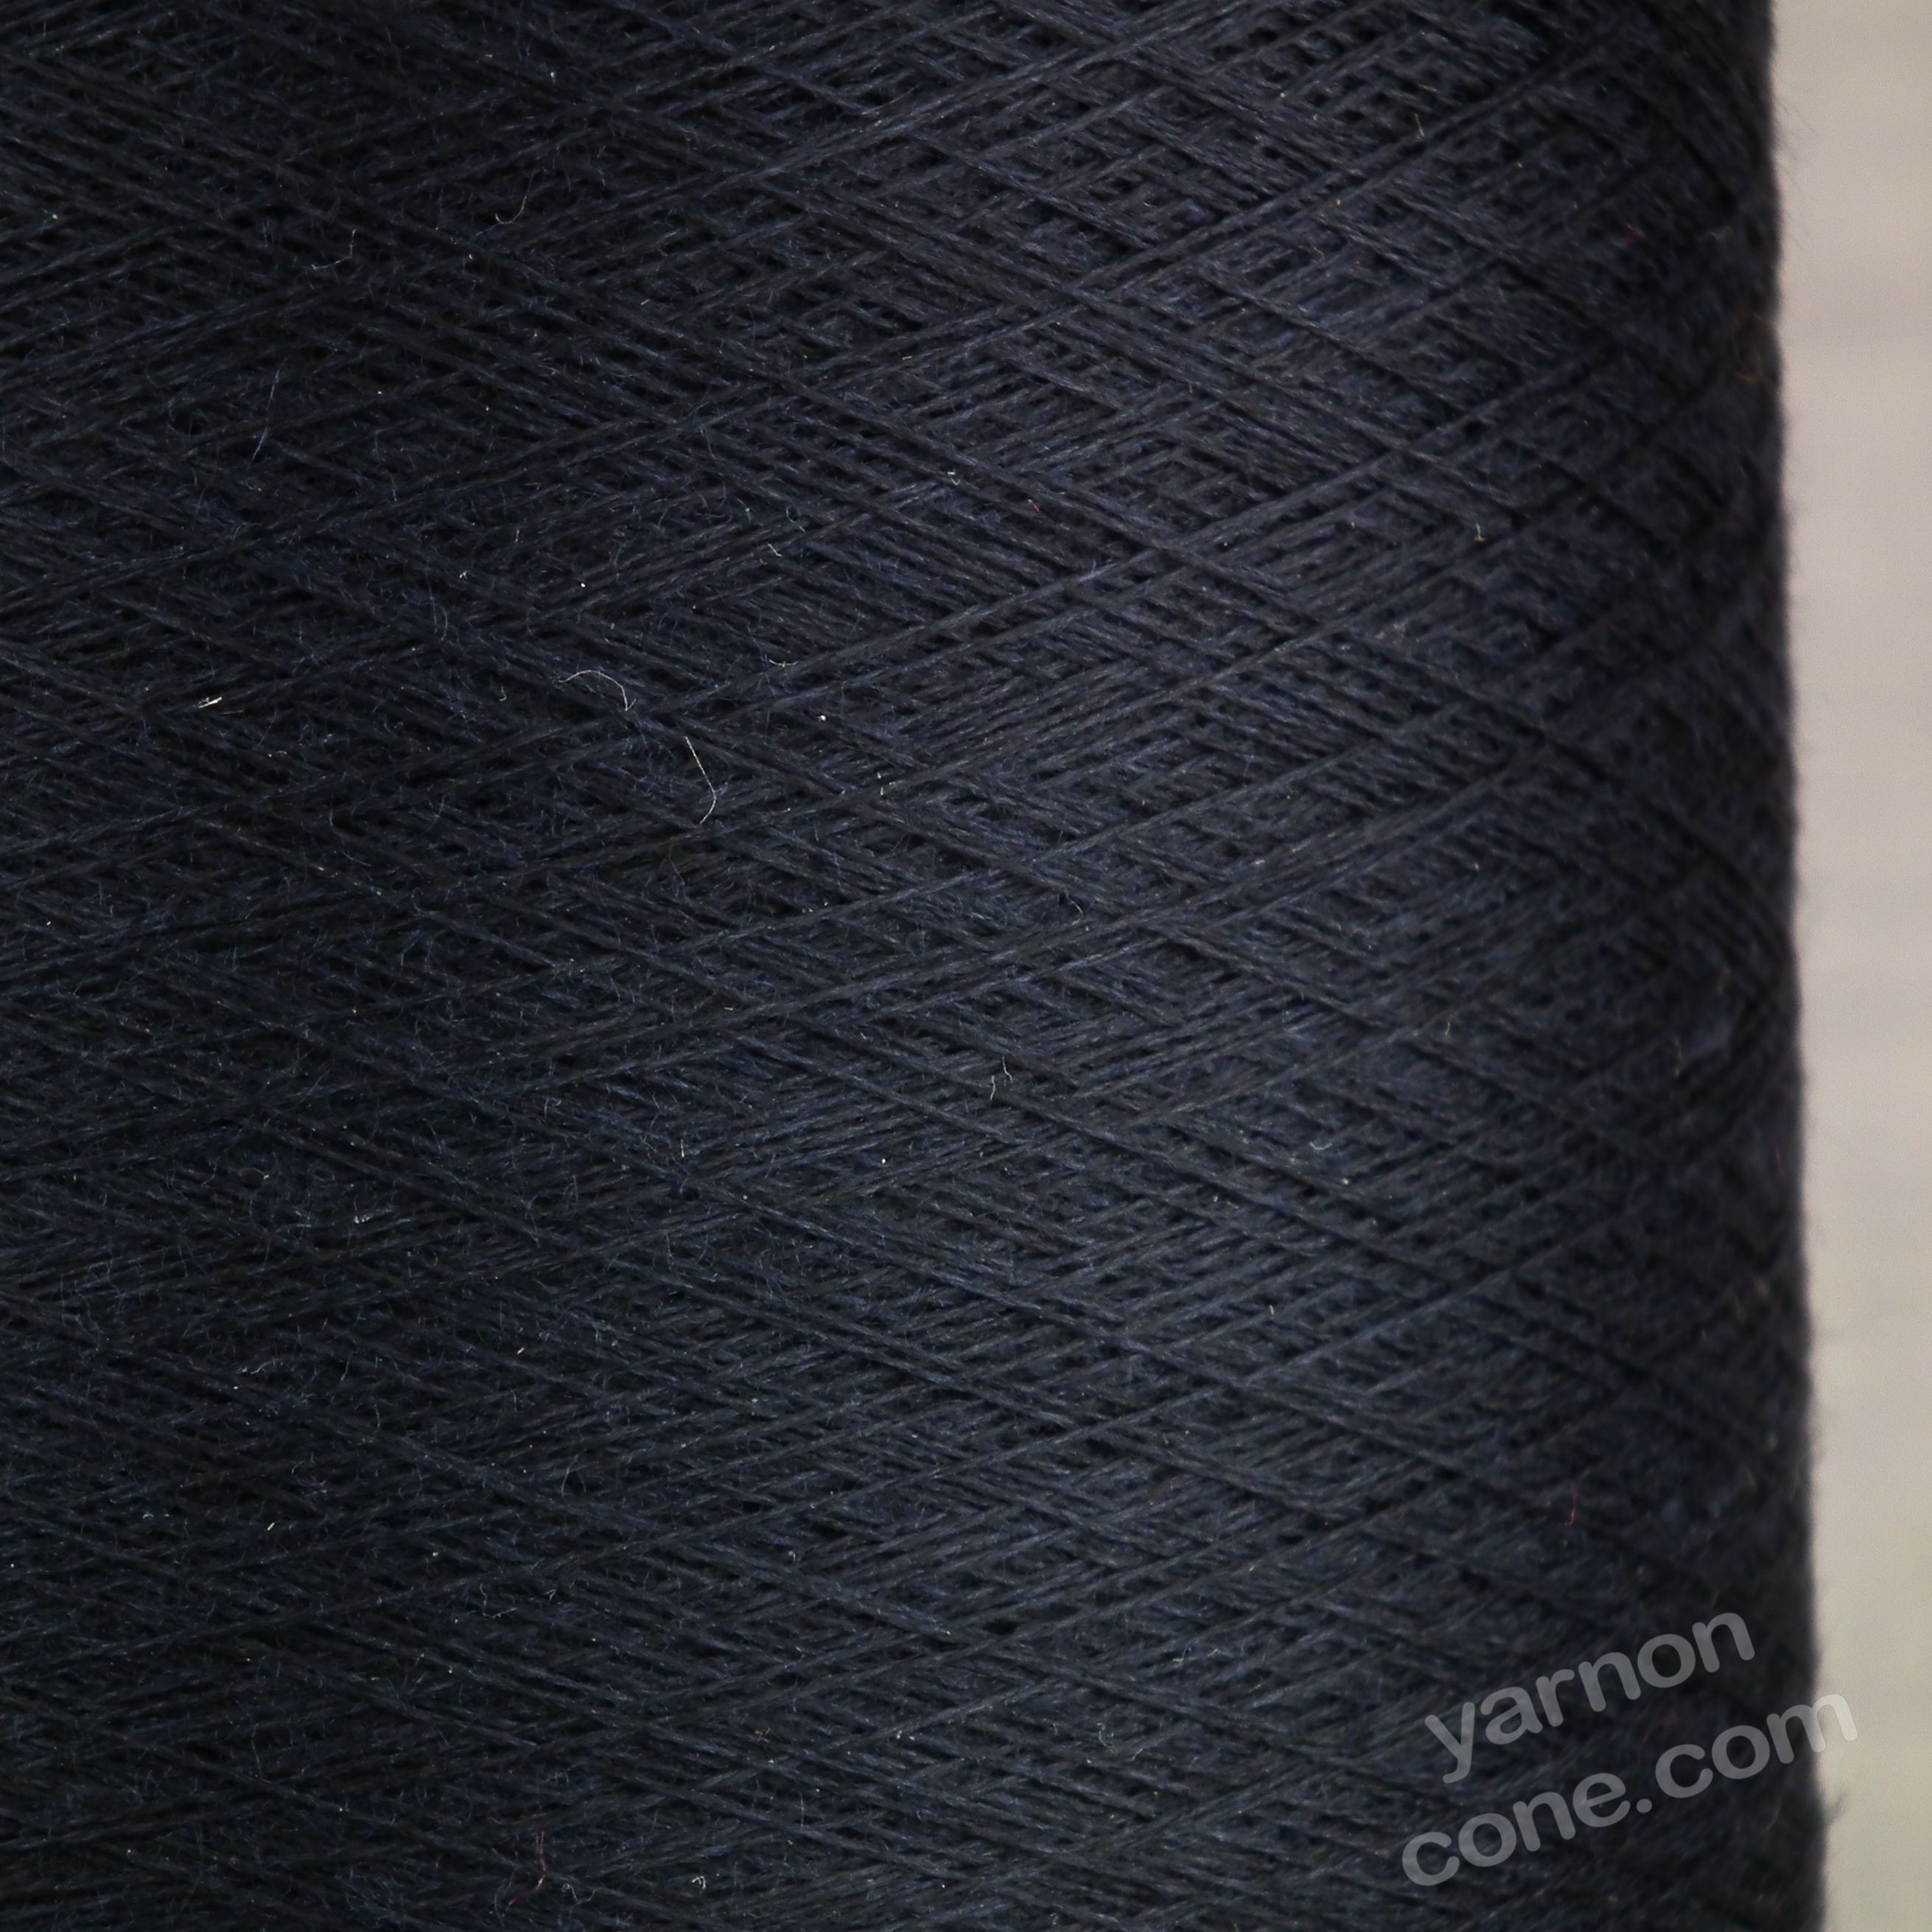 merino silk fine cobweb yarn on cone 2/60 NM UK knitting machine savile navy blue